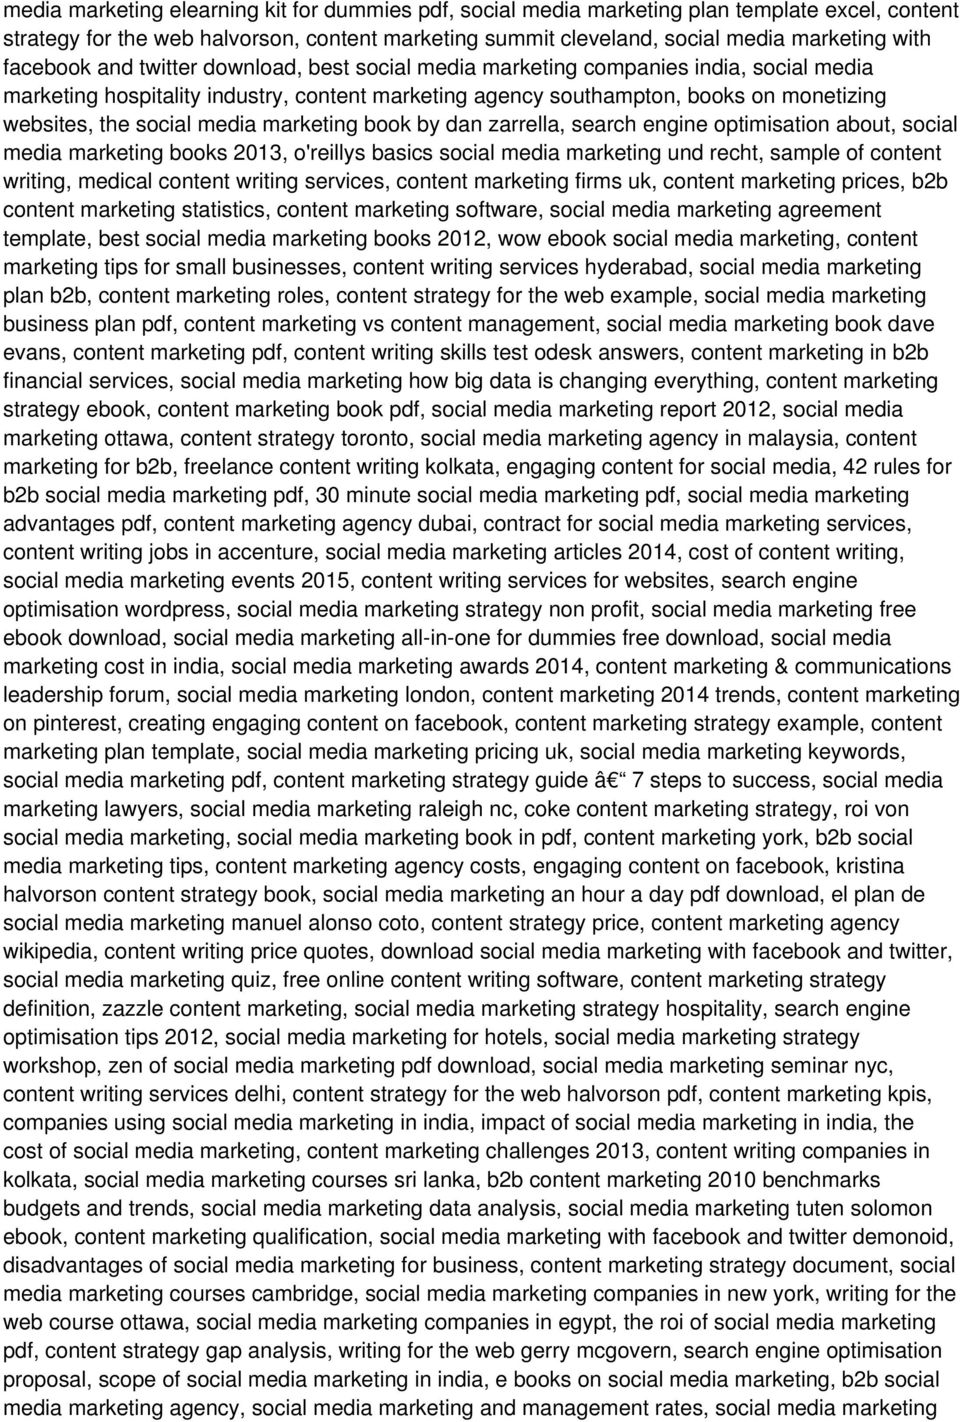 media marketing book by dan zarrella, search engine optimisation about, social media marketing books 2013, o'reillys basics social media marketing und recht, sample of content writing, medical